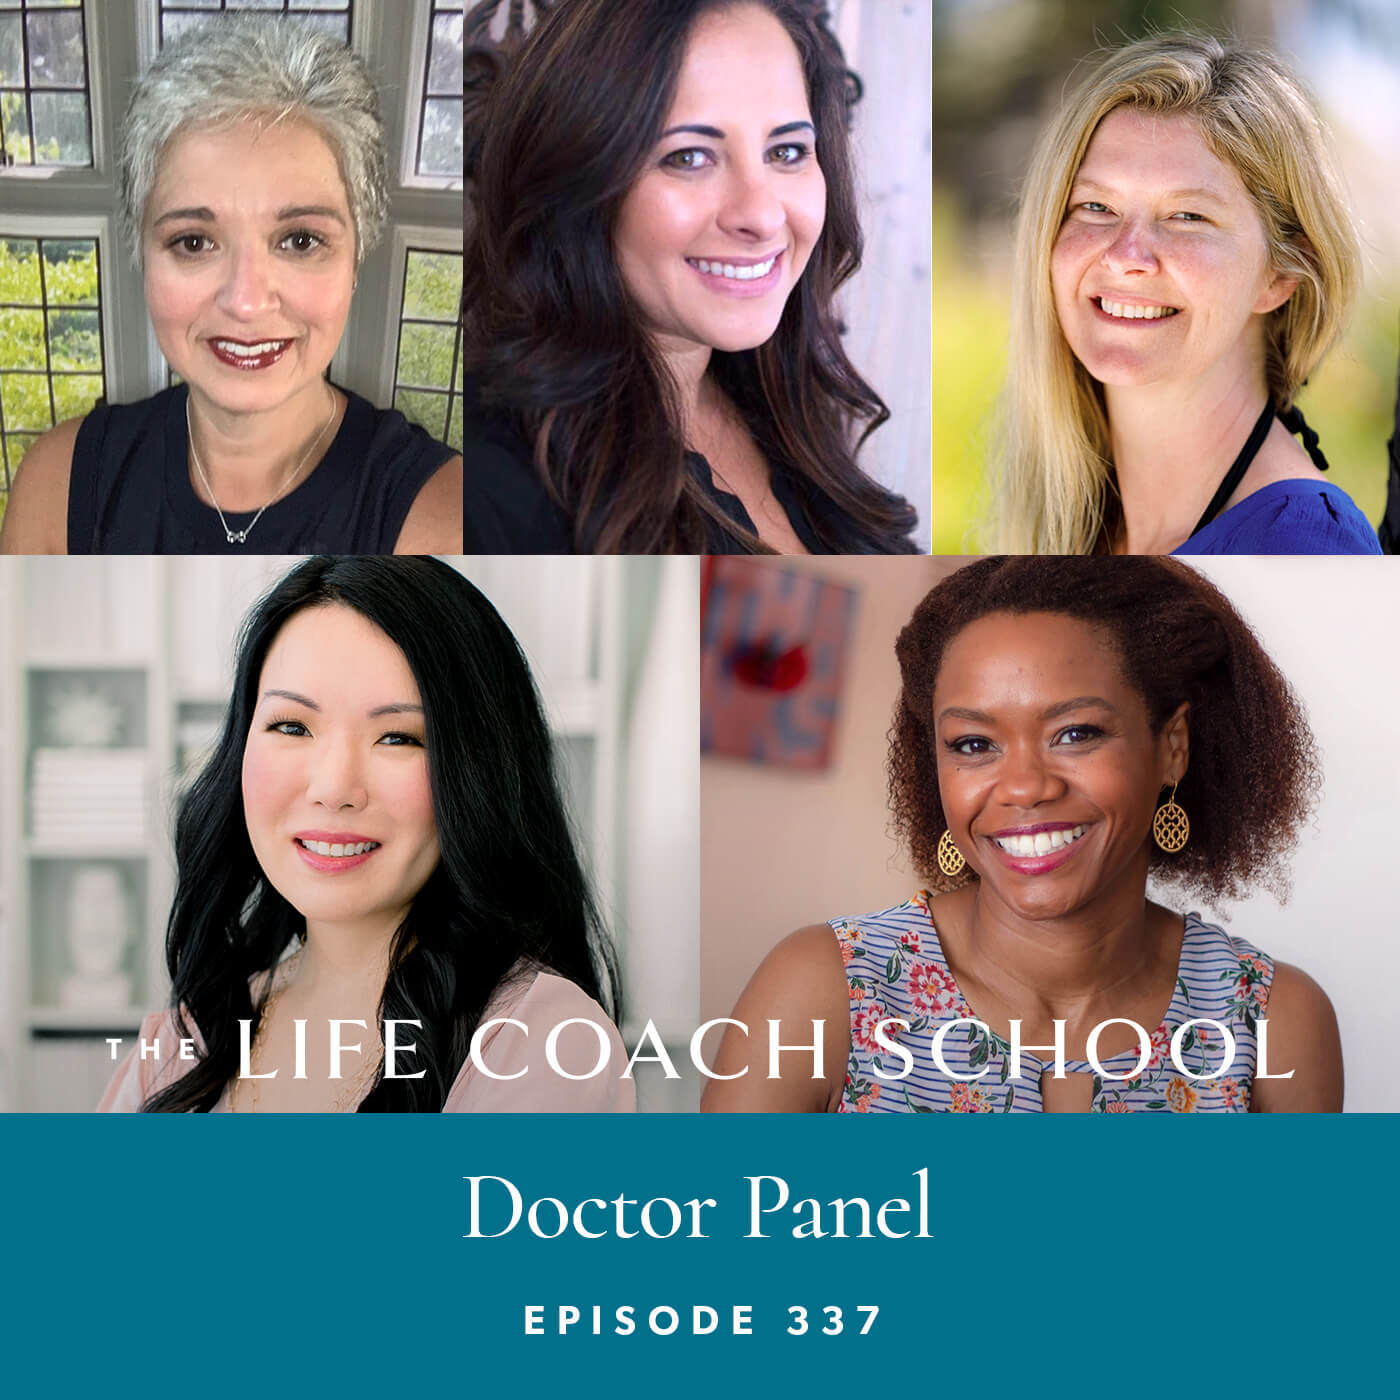 The Life Coach School Podcast with Brooke Castillo | Episode 337 | Doctor Panel